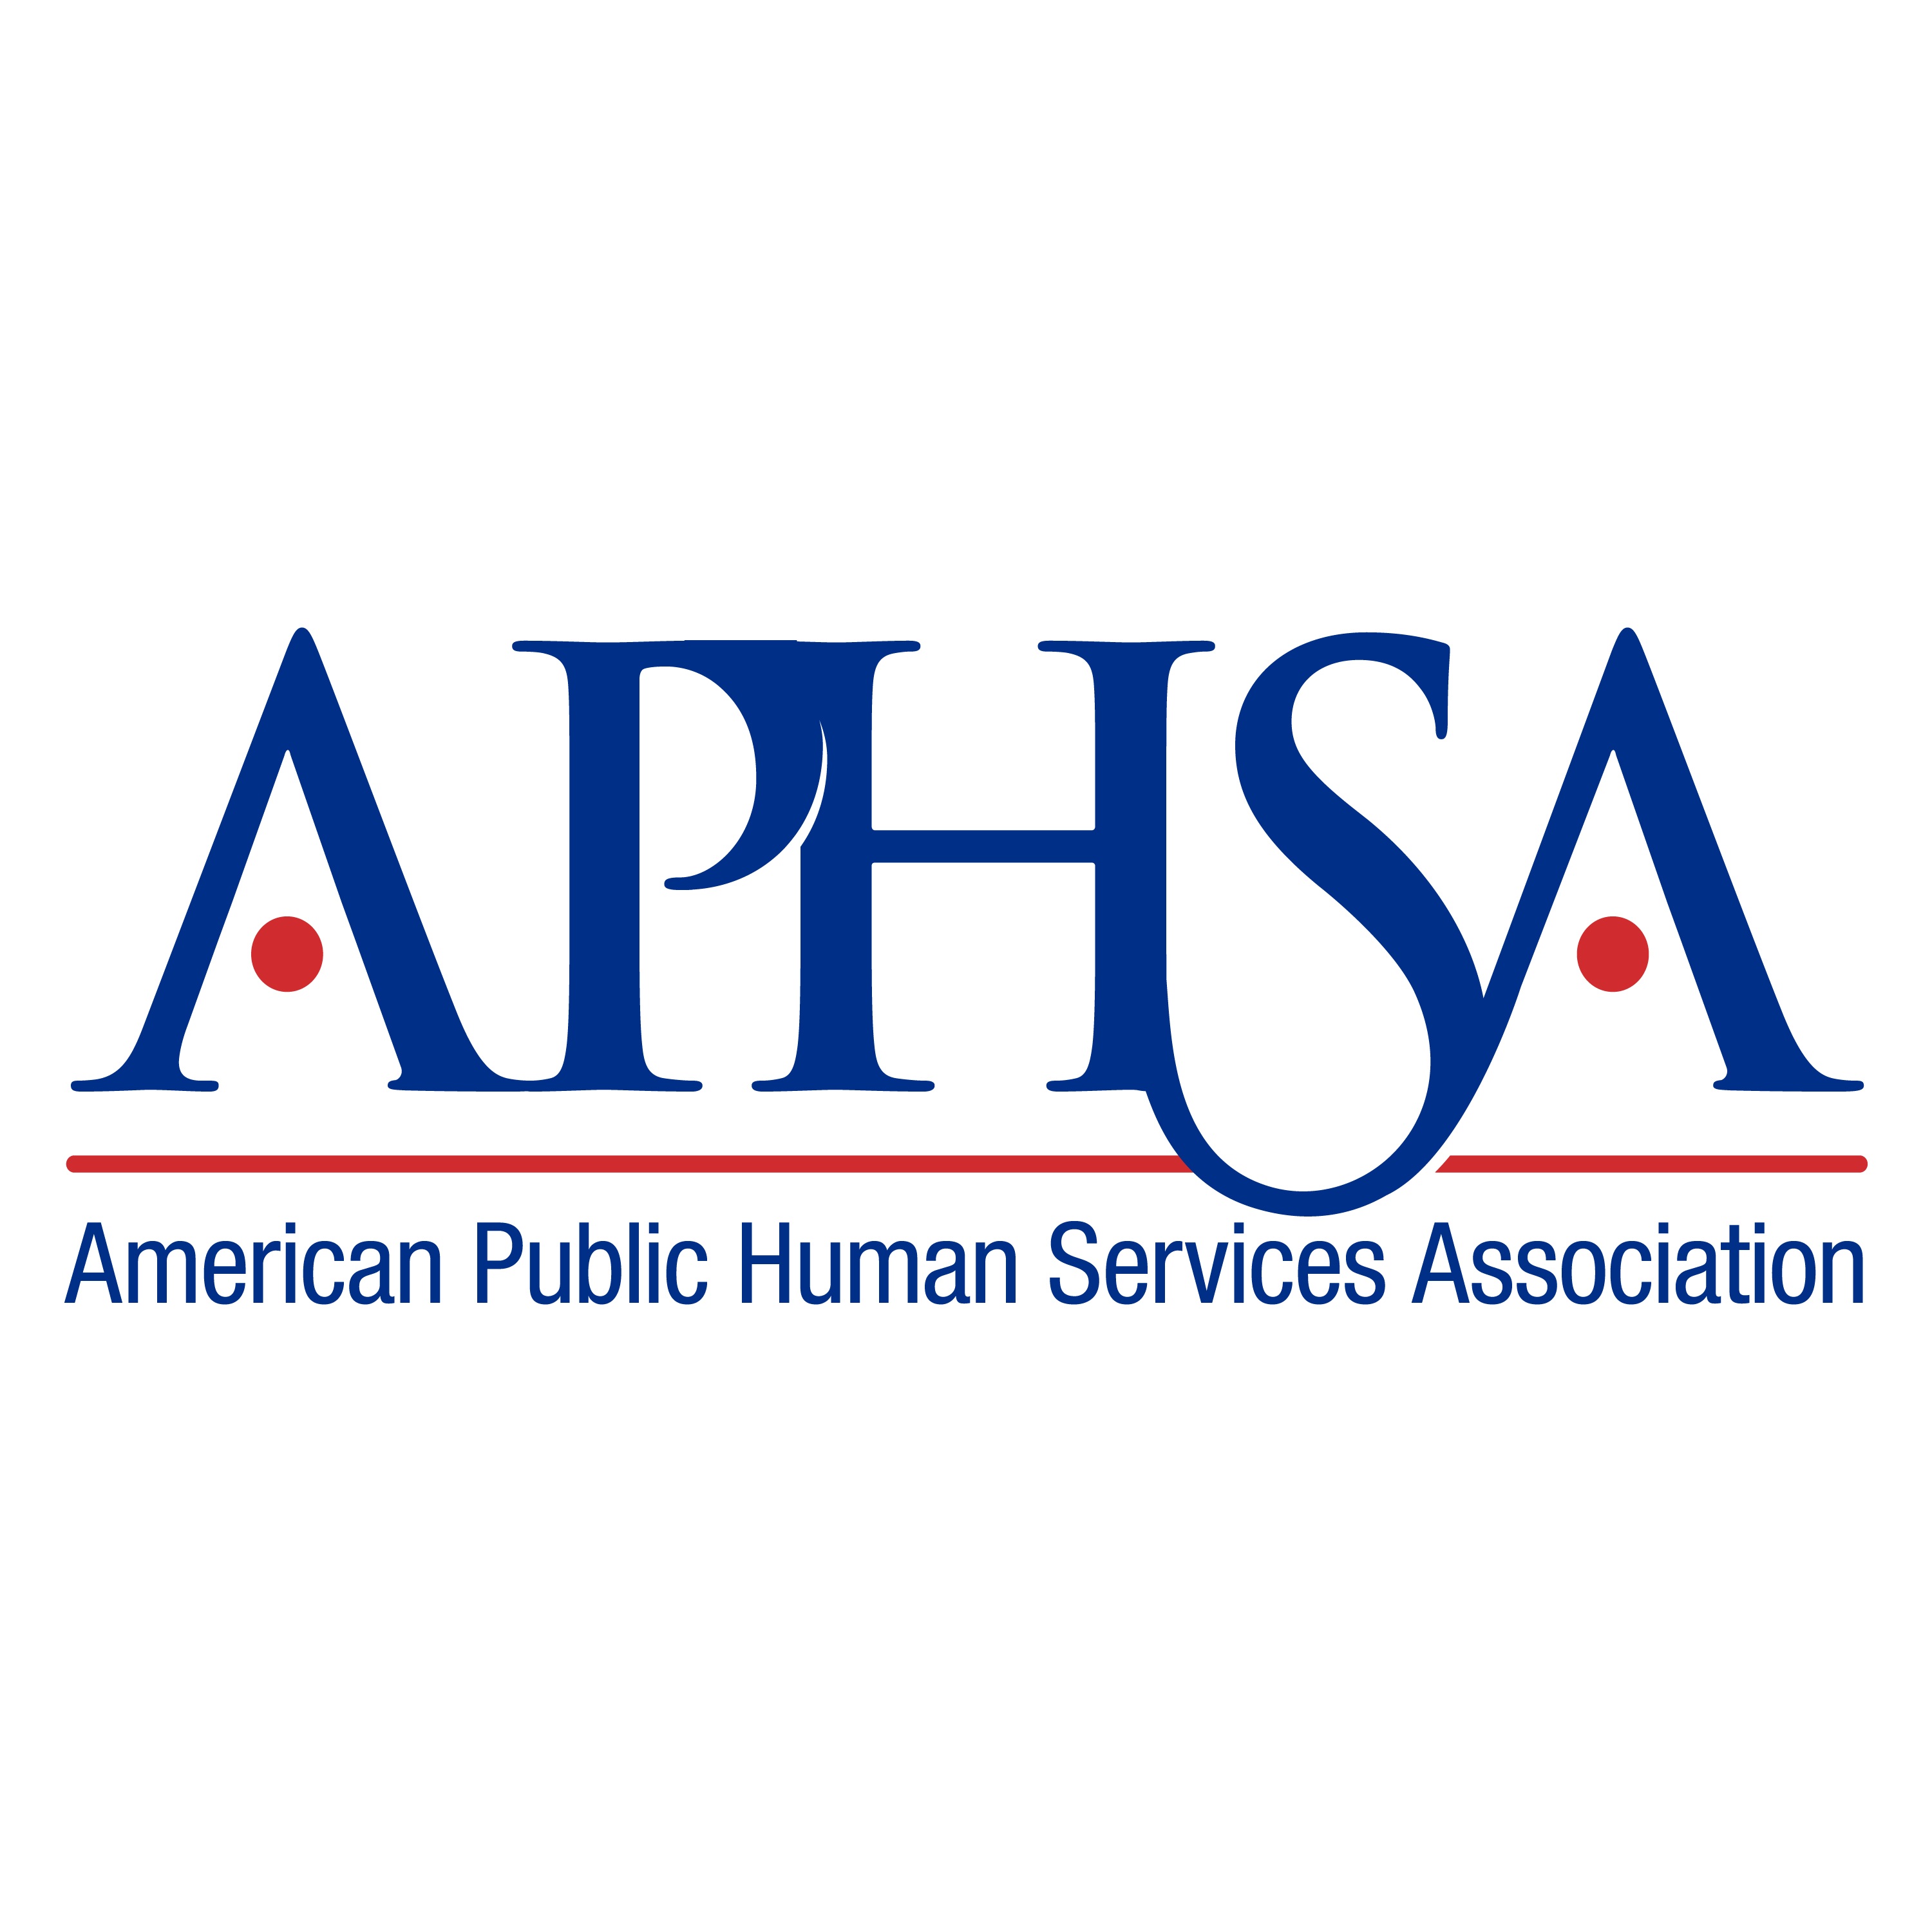 Administrative Data in Health and Human Services show art